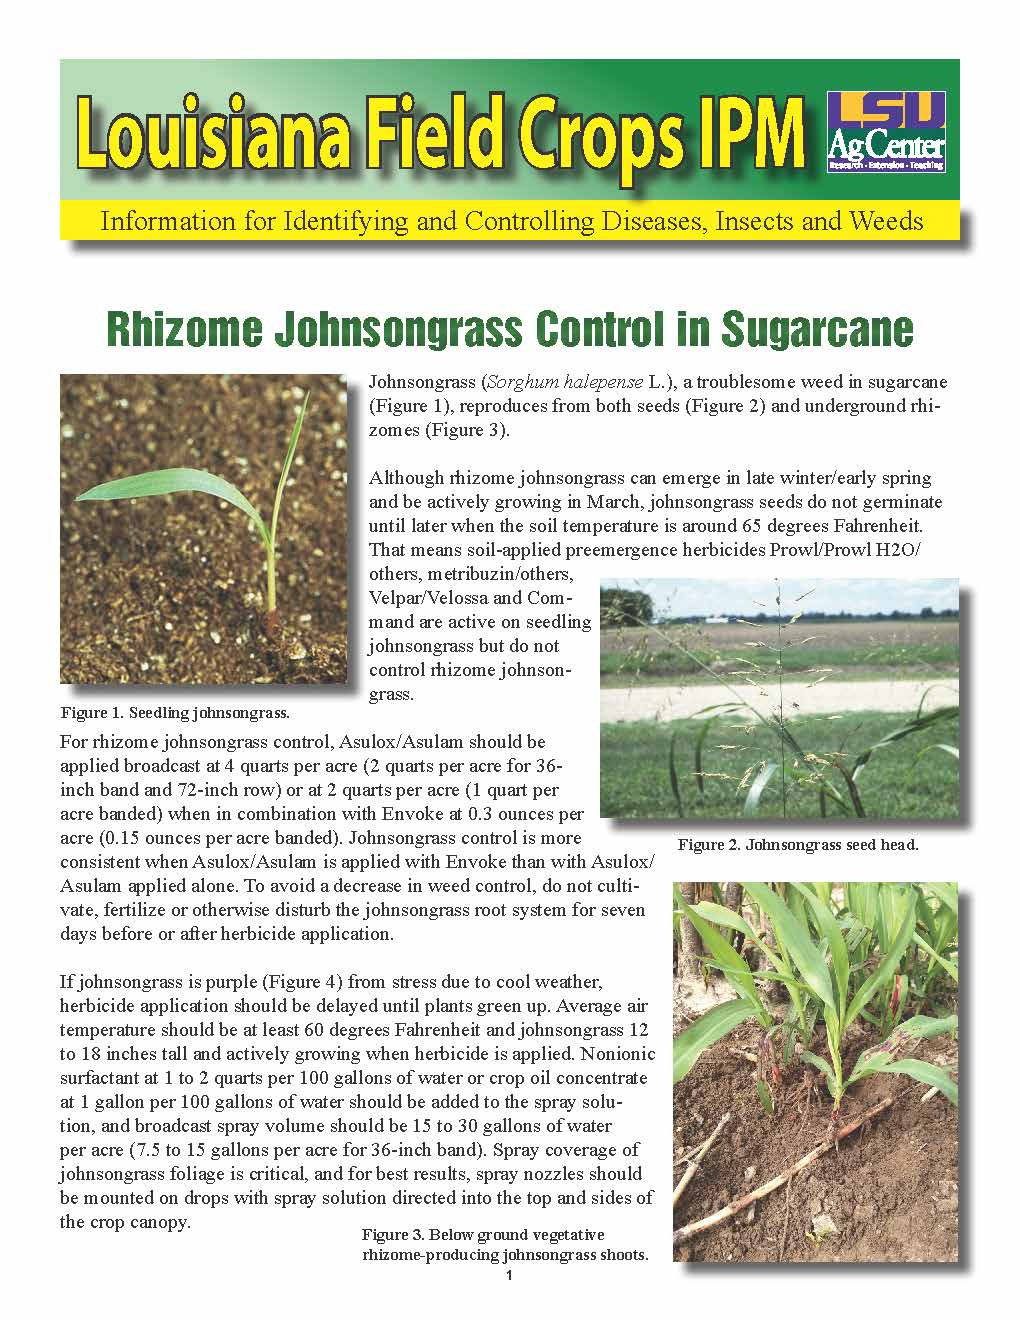 Rhizome Johnsongrass Control in Sugarcane